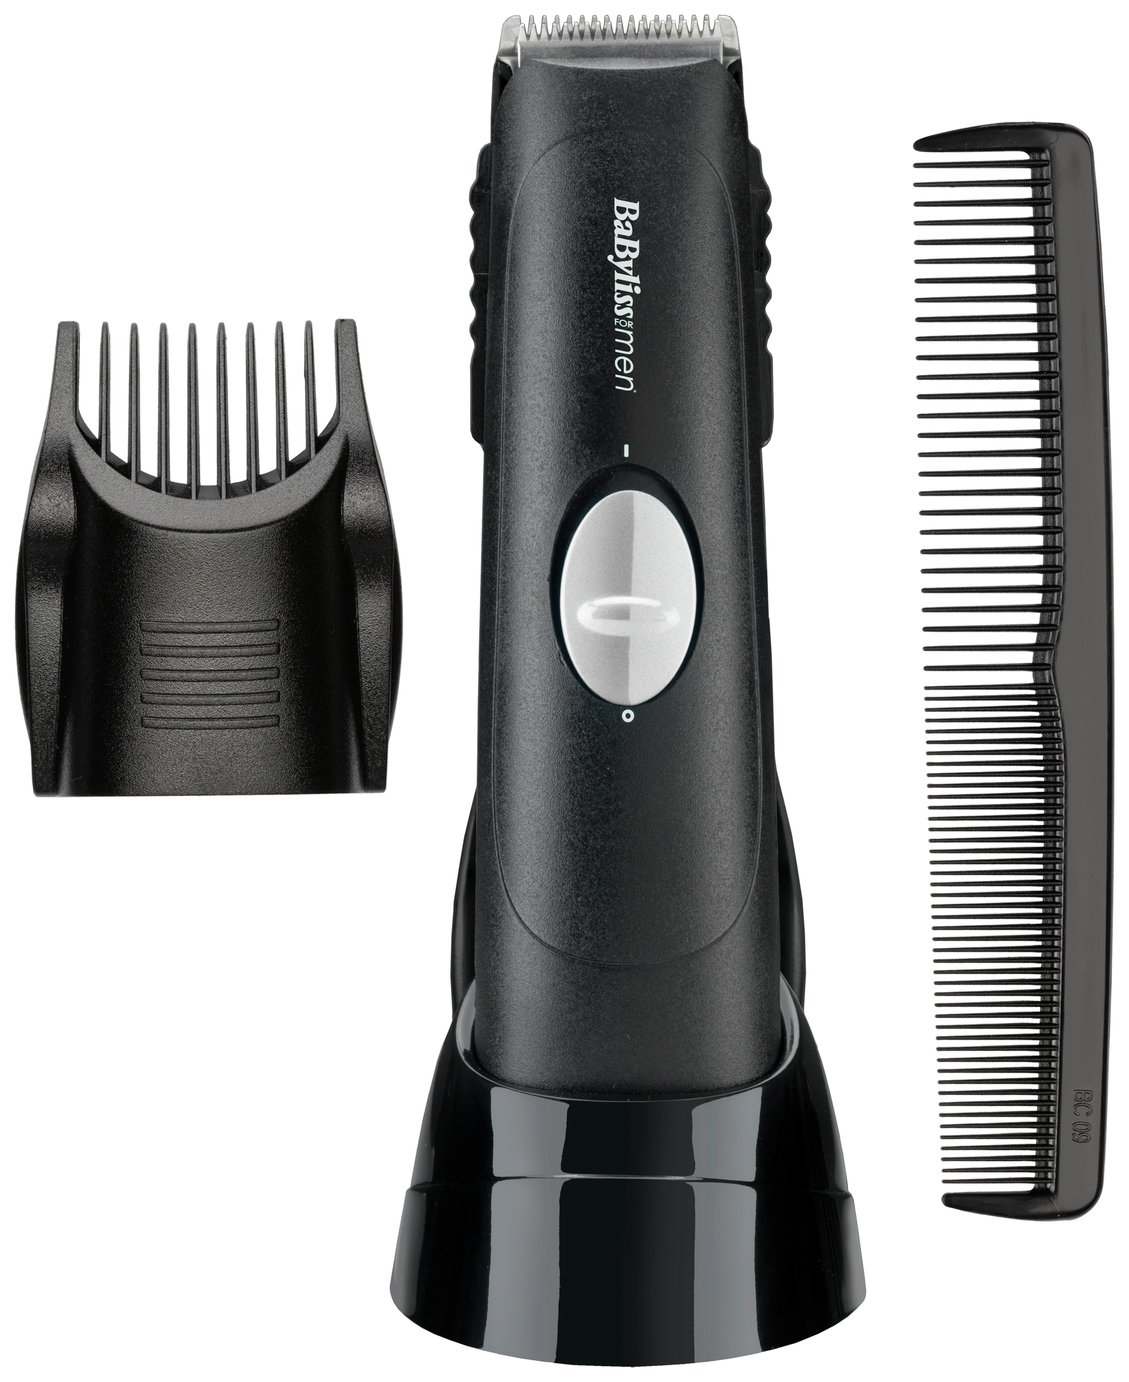 BaByliss For Men Battery Operated Beard Trimmer 7050au